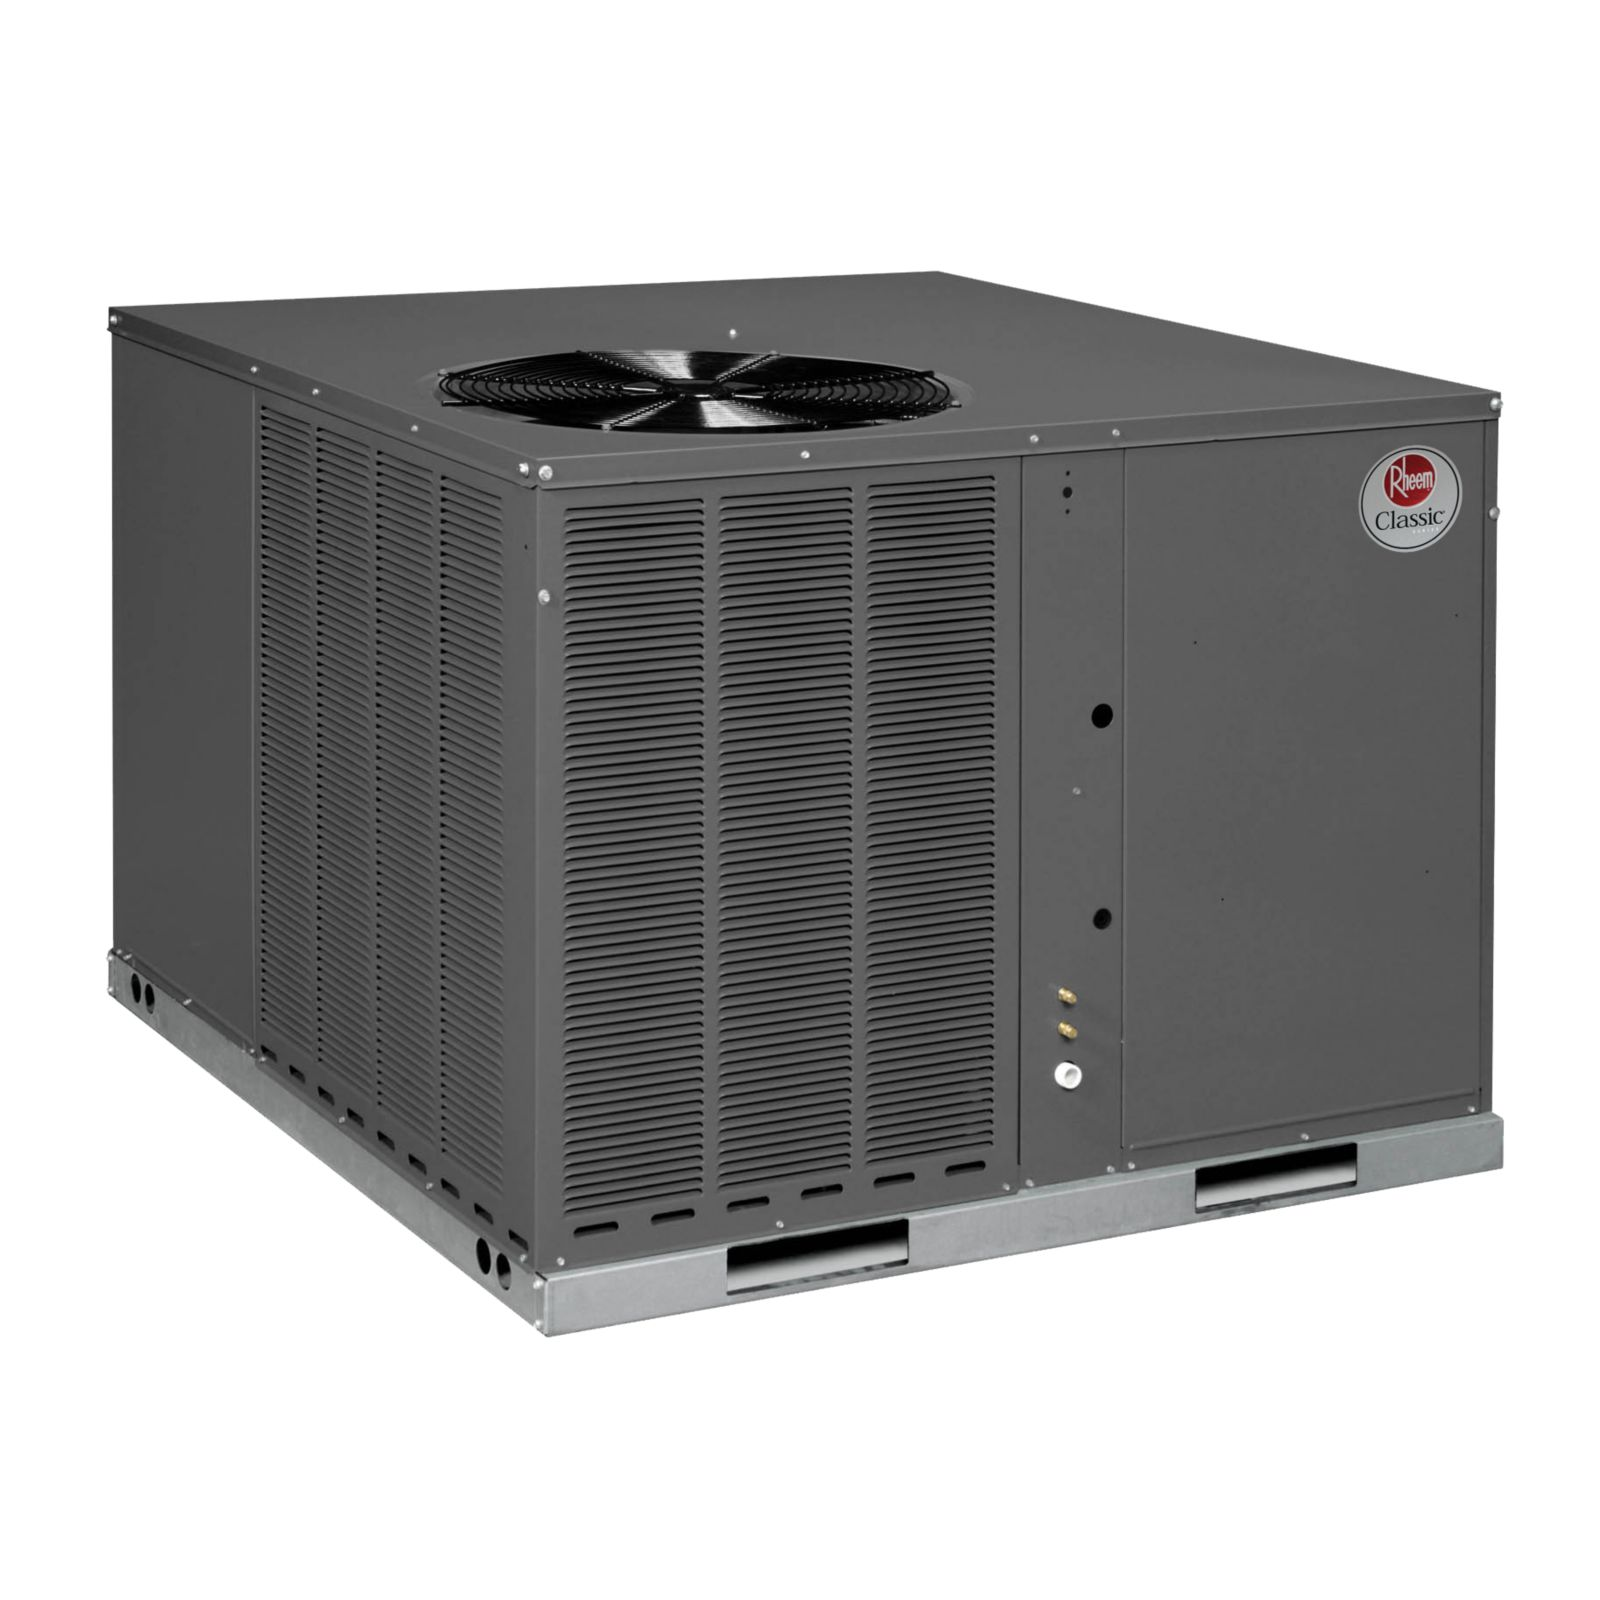 Rheem RQPL-B036JK000 - 3 Ton, 14 SEER, R410A, Packaged Heat Pump, 208-230 V, 1 Ph, 60 Hz